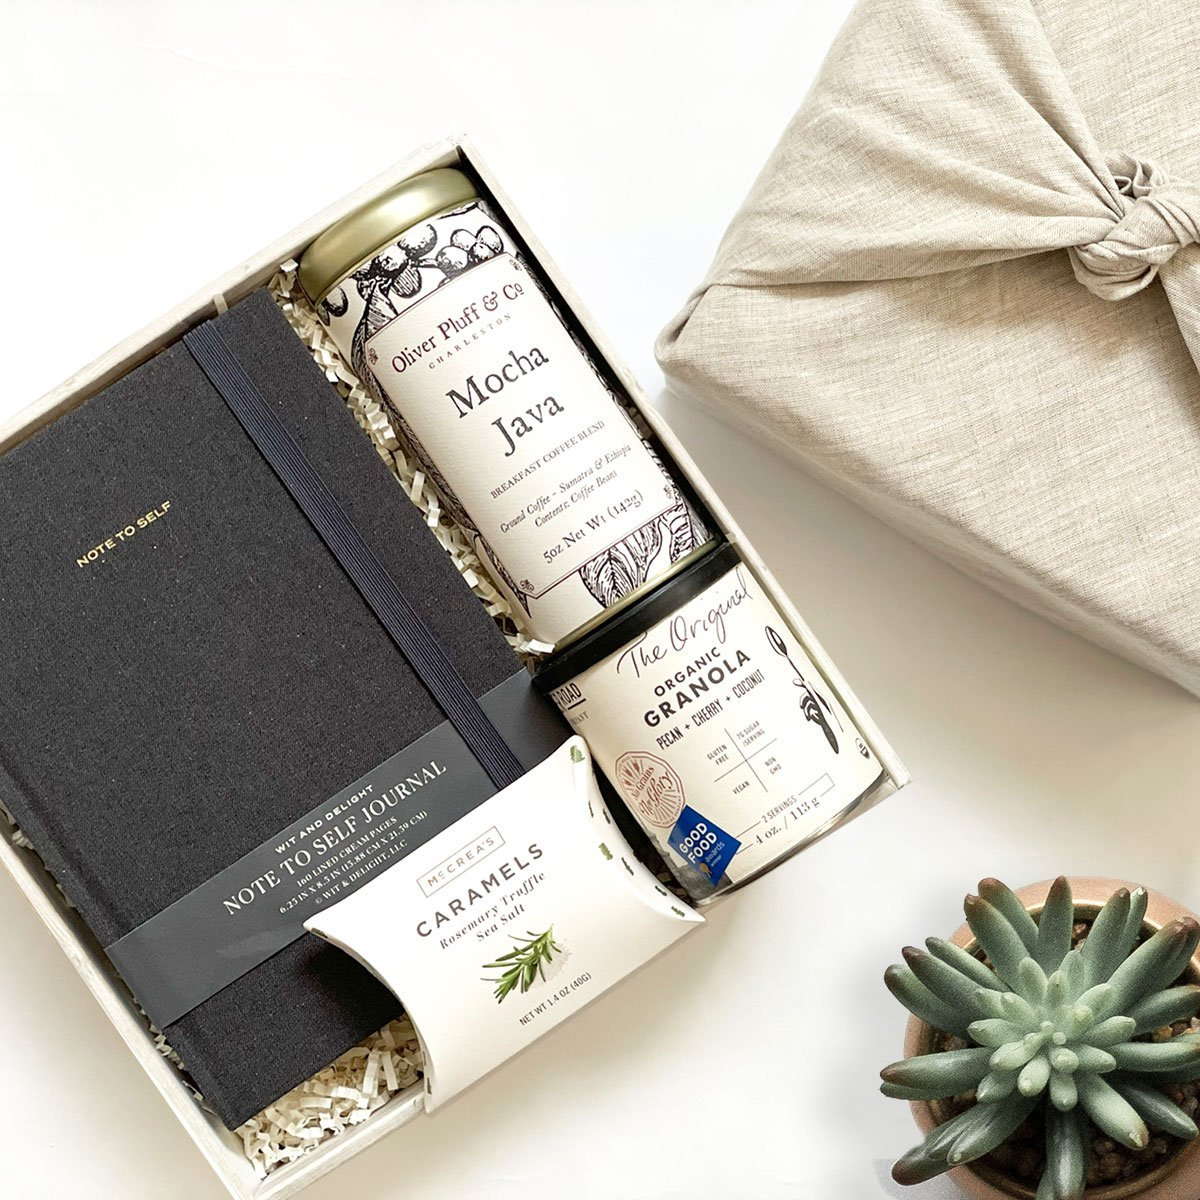 KADOO The Home Office – Desk essential gift box wrapped in Furoshiki linen. Wit & delight journal in black, McCrea's sea salt truffle caramel, Oliver Pluff & Co Mocha Java, Banner Road Granola. Unique and creative corporate gifts.